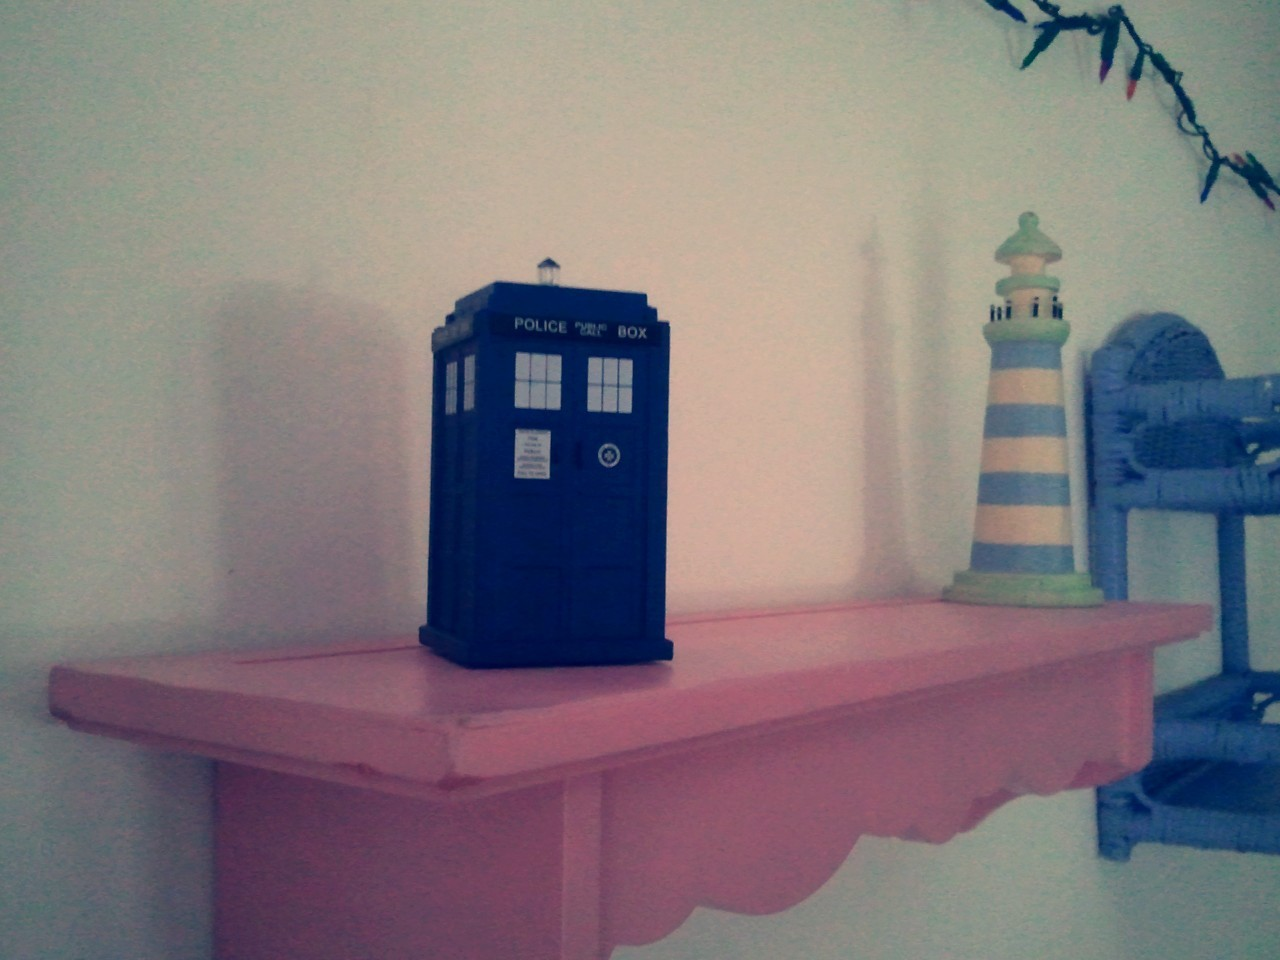 A new TARDIS appears! (Taken with InstaCam)